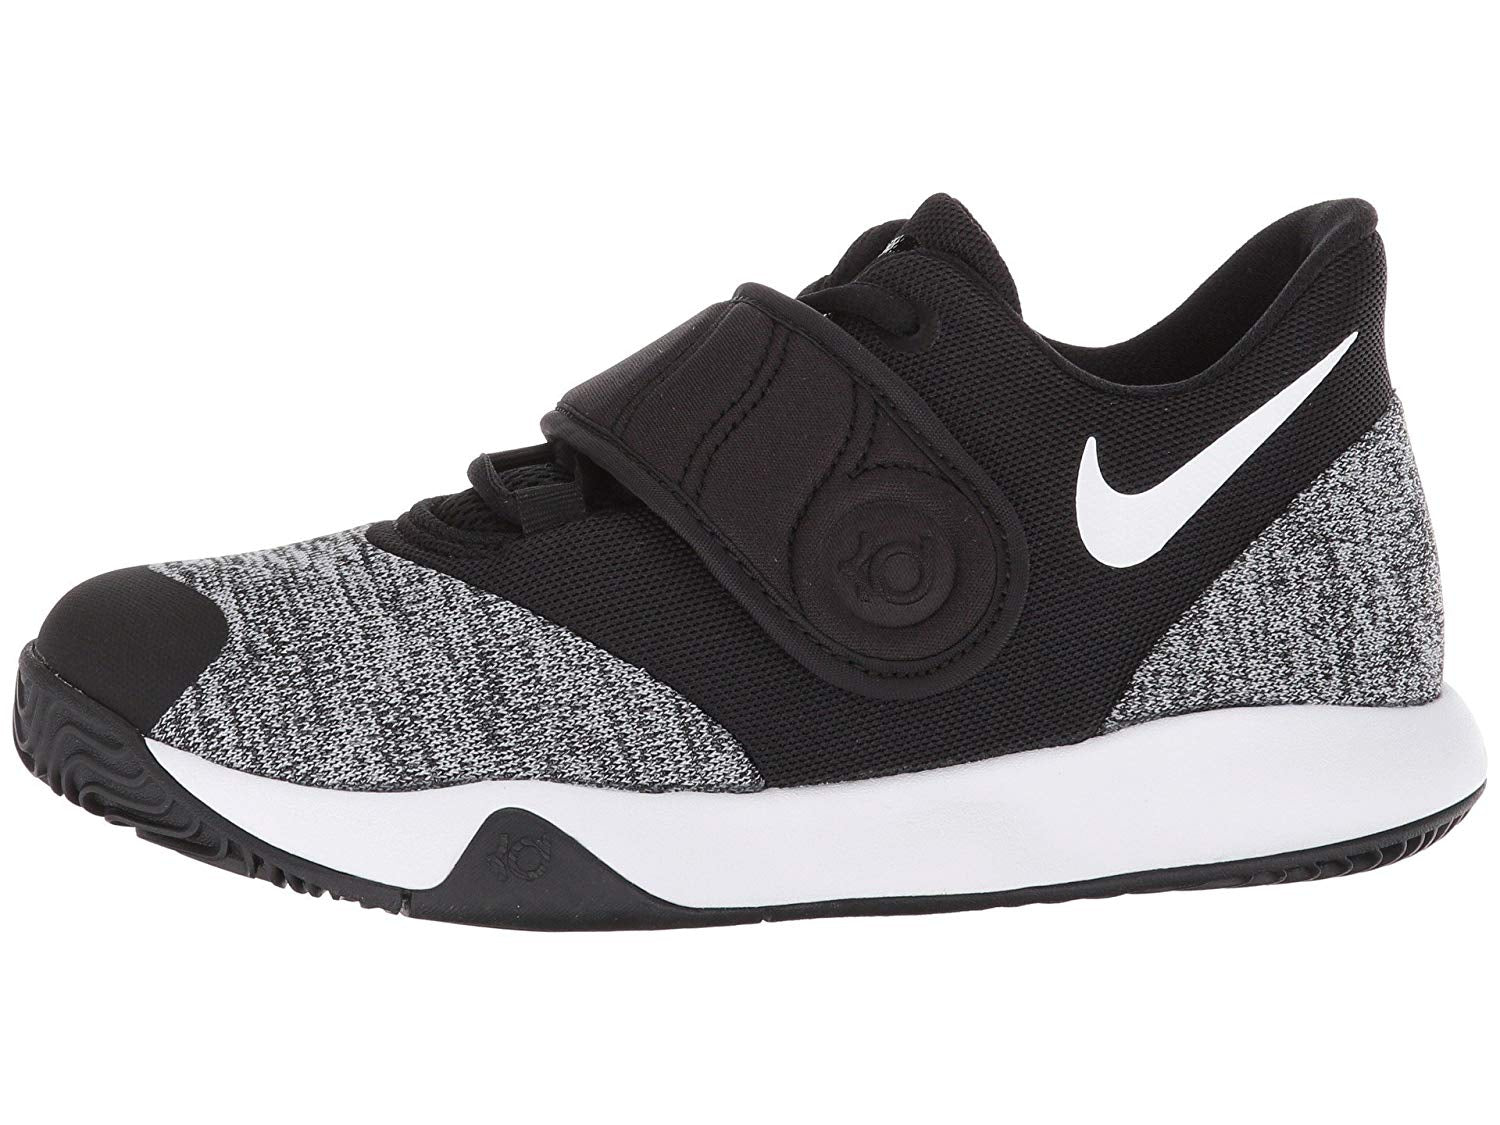 Nike Kids KD Trey 5 VI Pre-Pchool Basketball Shoe NK-AH7173-001